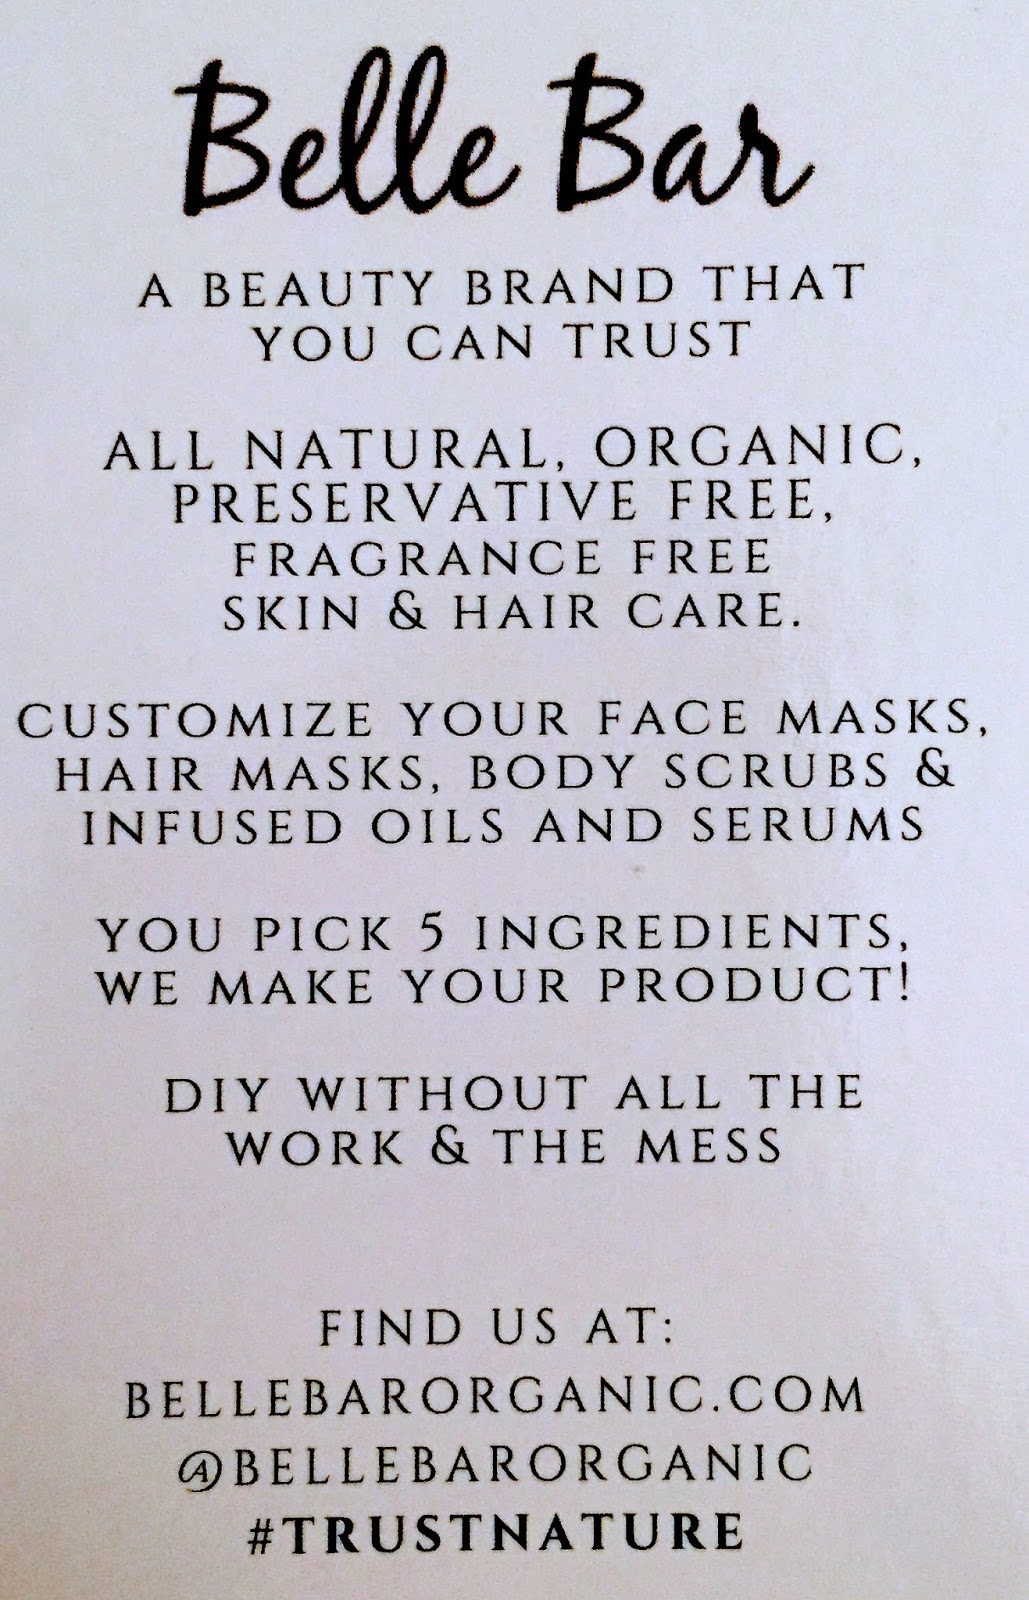 BelleBar Organic All Natural Customized Skin and Hair Care